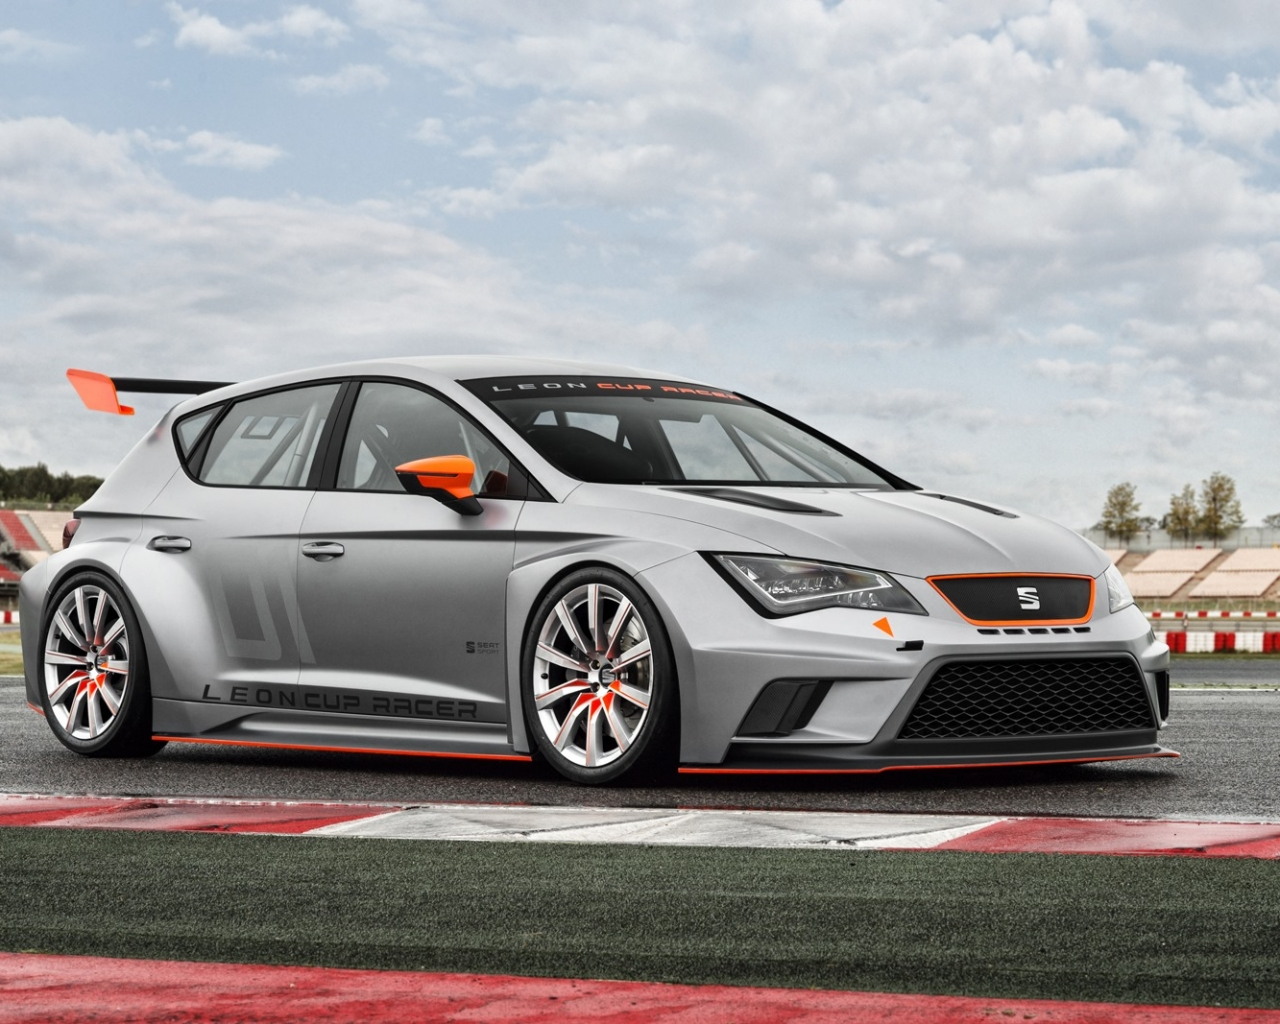 Seat Leon Cup Racer - 1280x1024